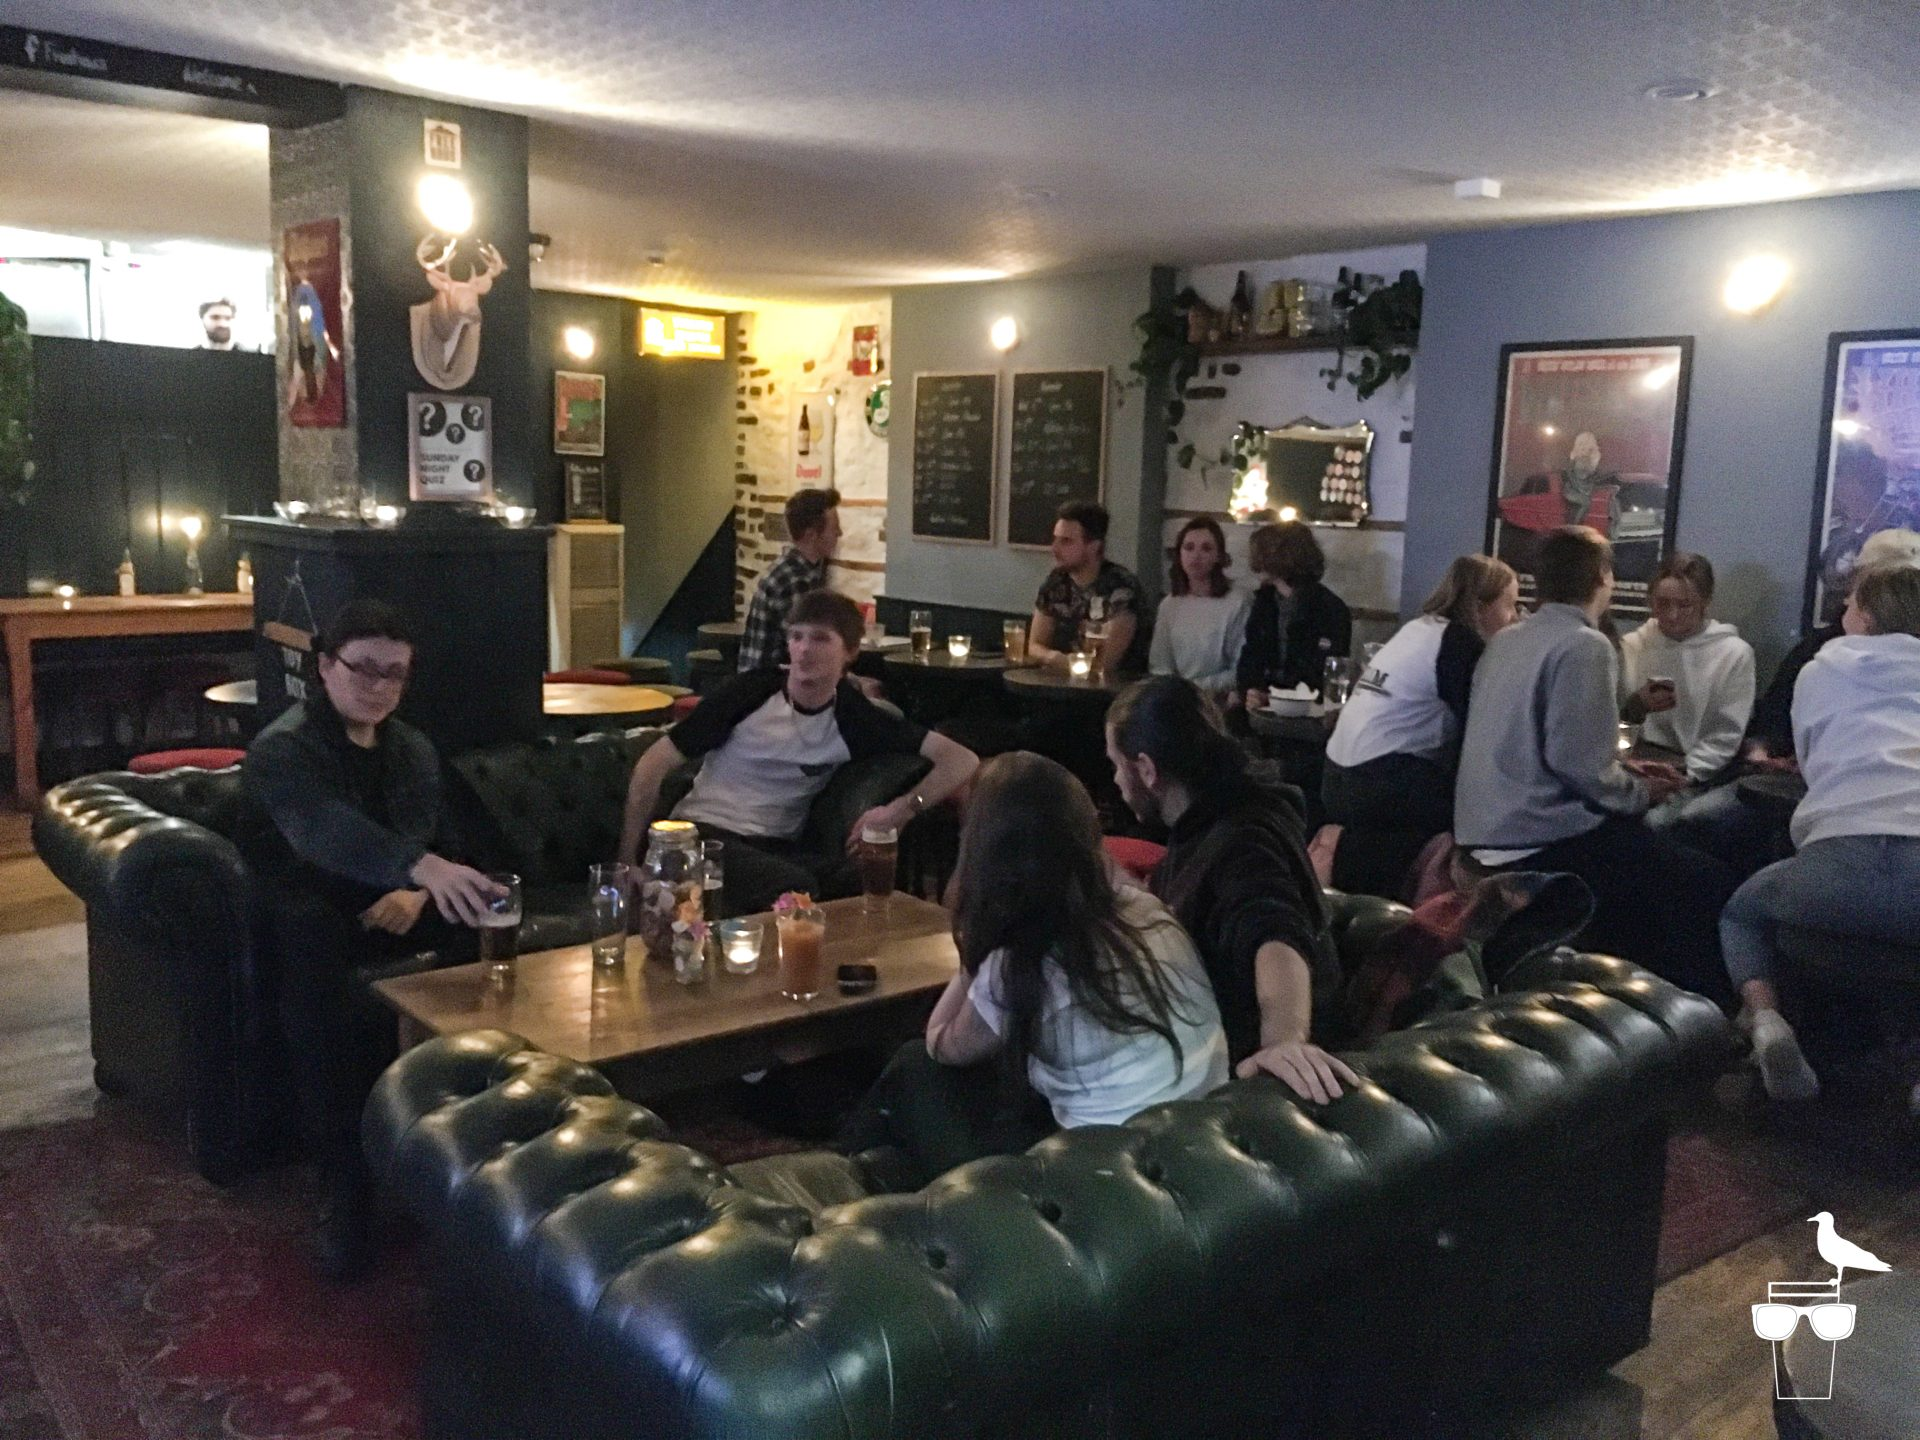 freehaus pub brighton seating customers on sofas